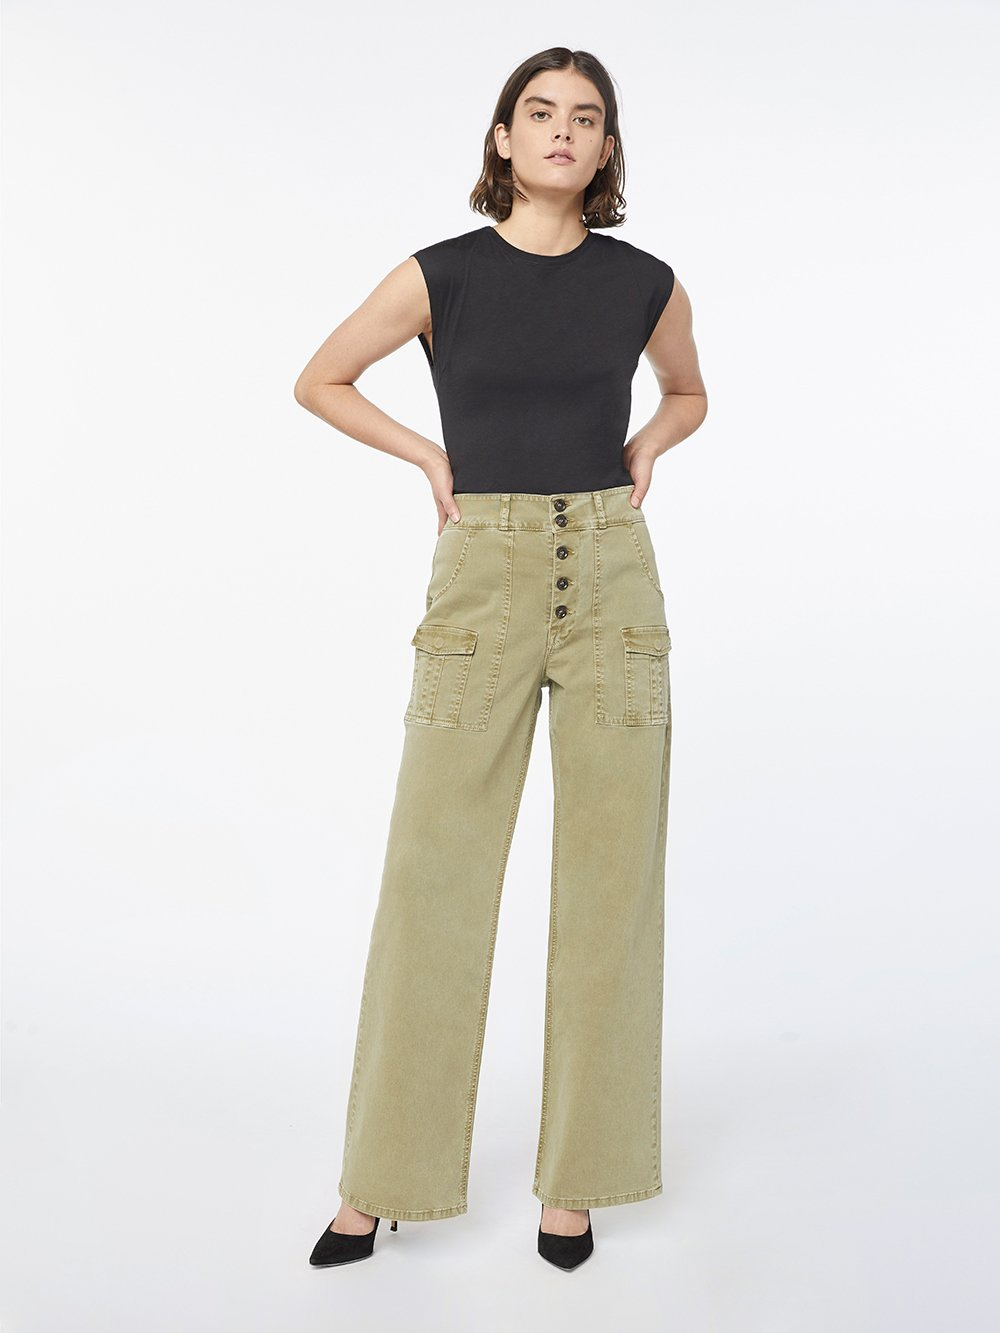 pants front full body view 2 alt:hover